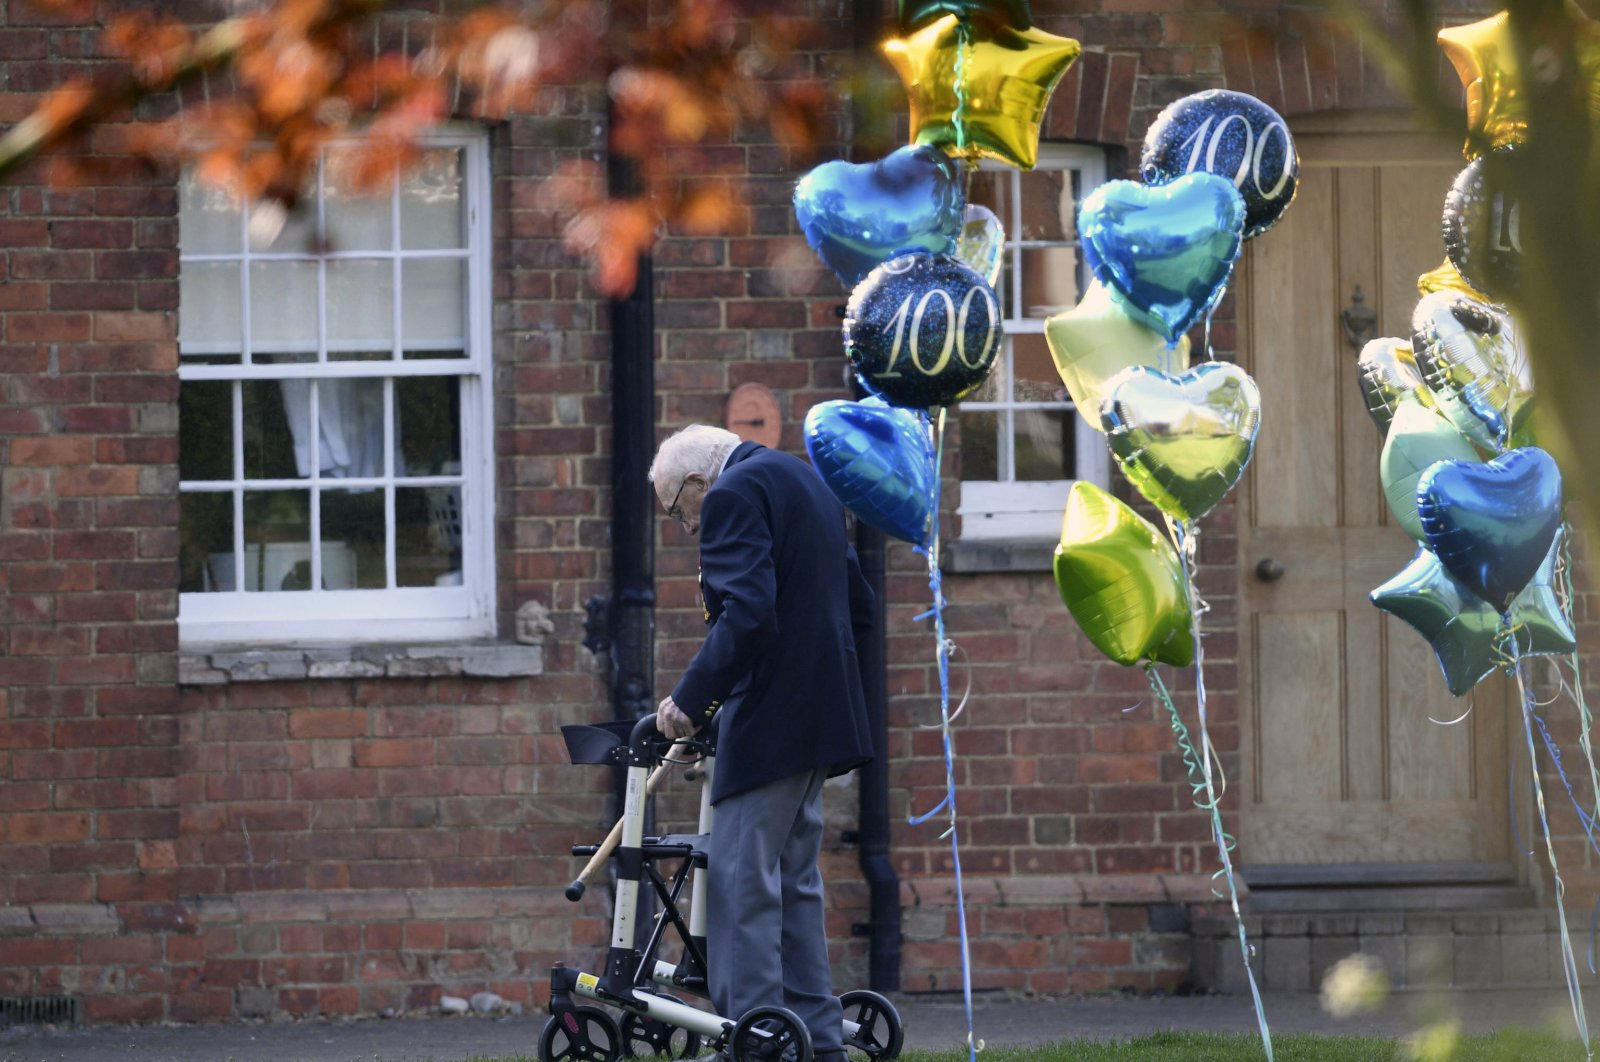 99-year old British military veteran Tom Moore, who has completed the 100th length of his garden at his home in Marston Moretaine, raising millions of pounds for the NHS with donations to his fundraising challenge from around the world, Thursday April 16, 2020. (AP Photo)